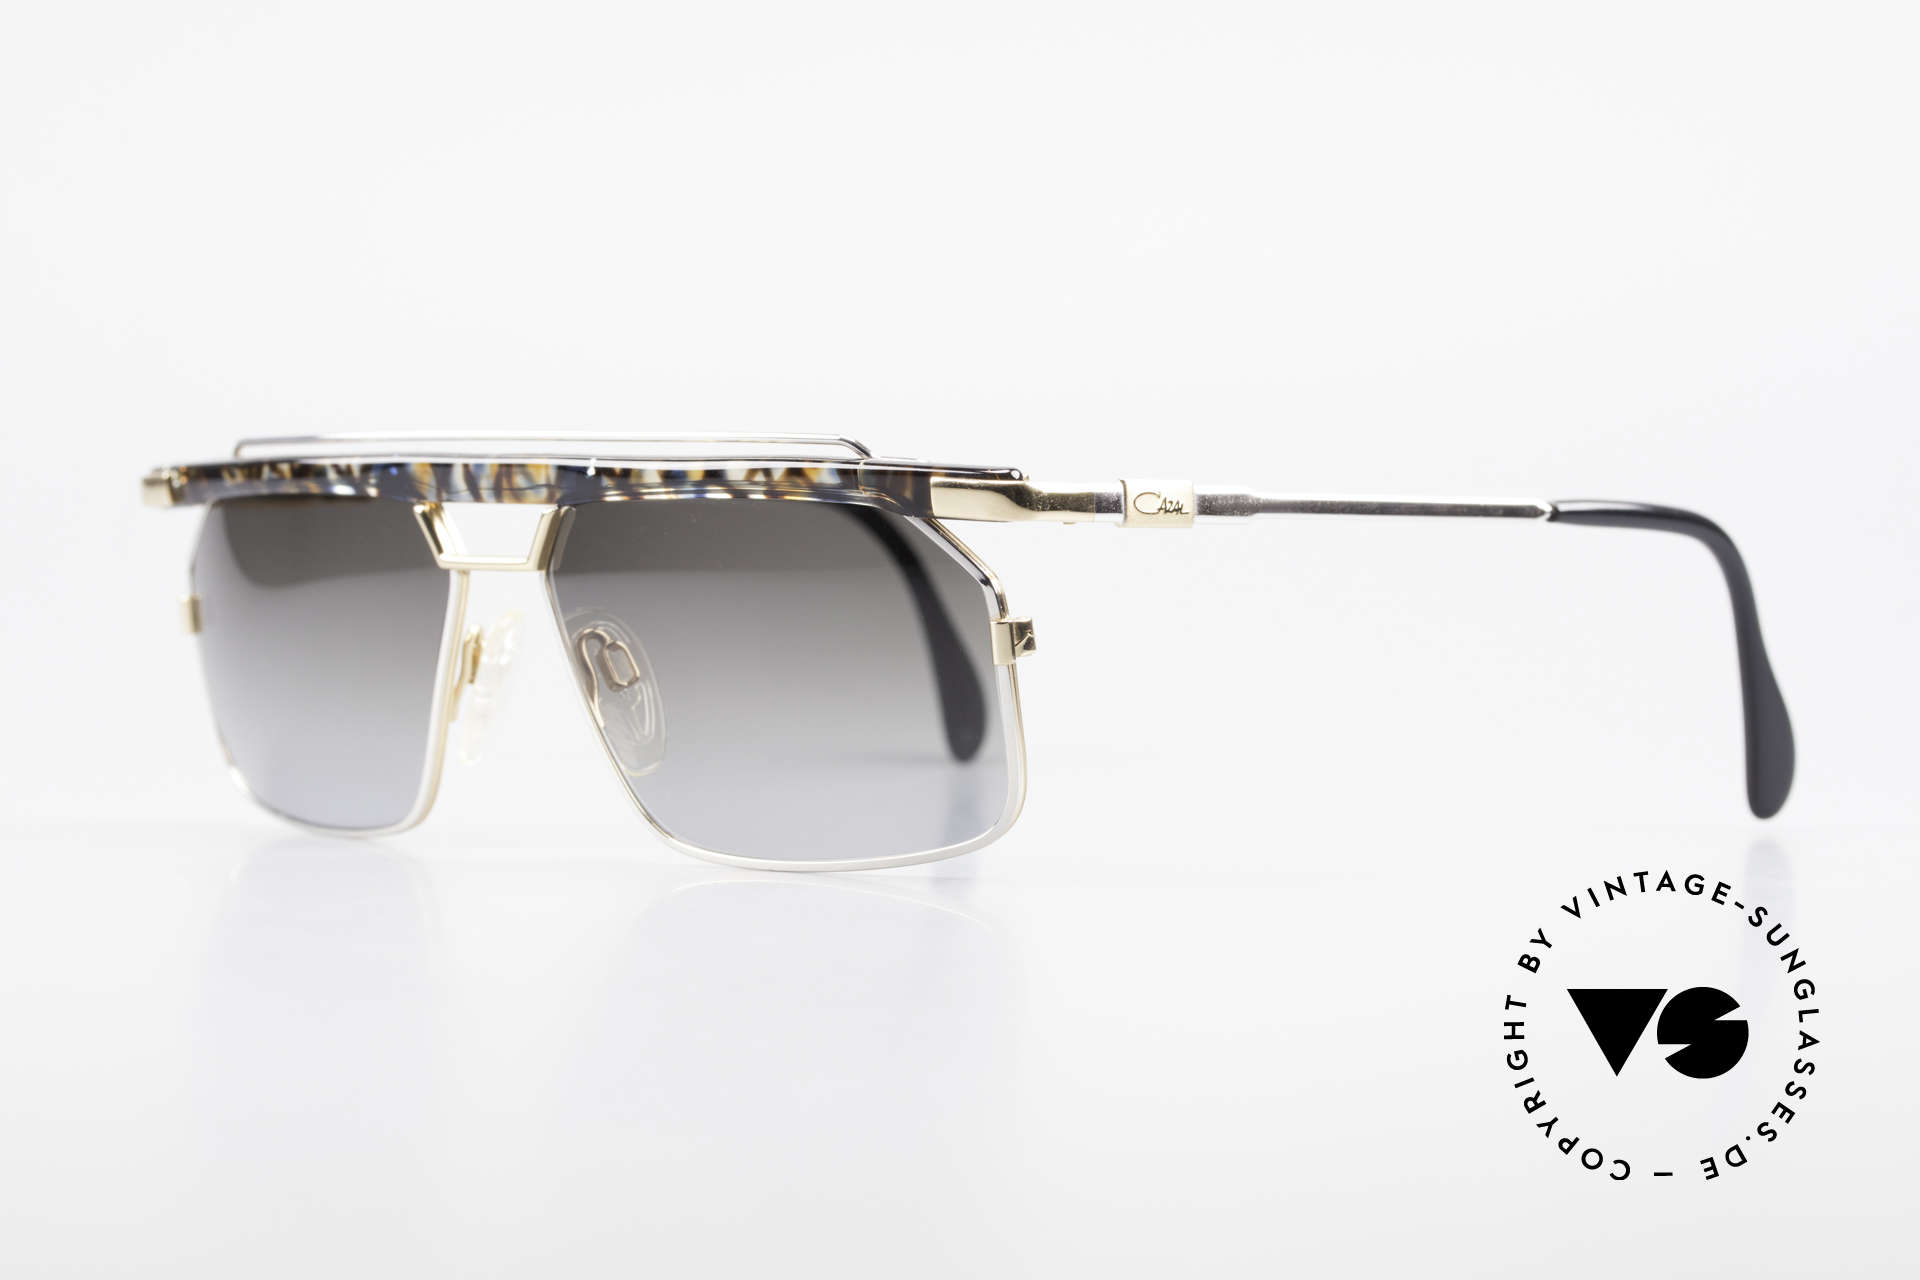 Cazal 752 Extraordinary Vintage Shades, extremely rare (made in a small quantity only), Made for Men